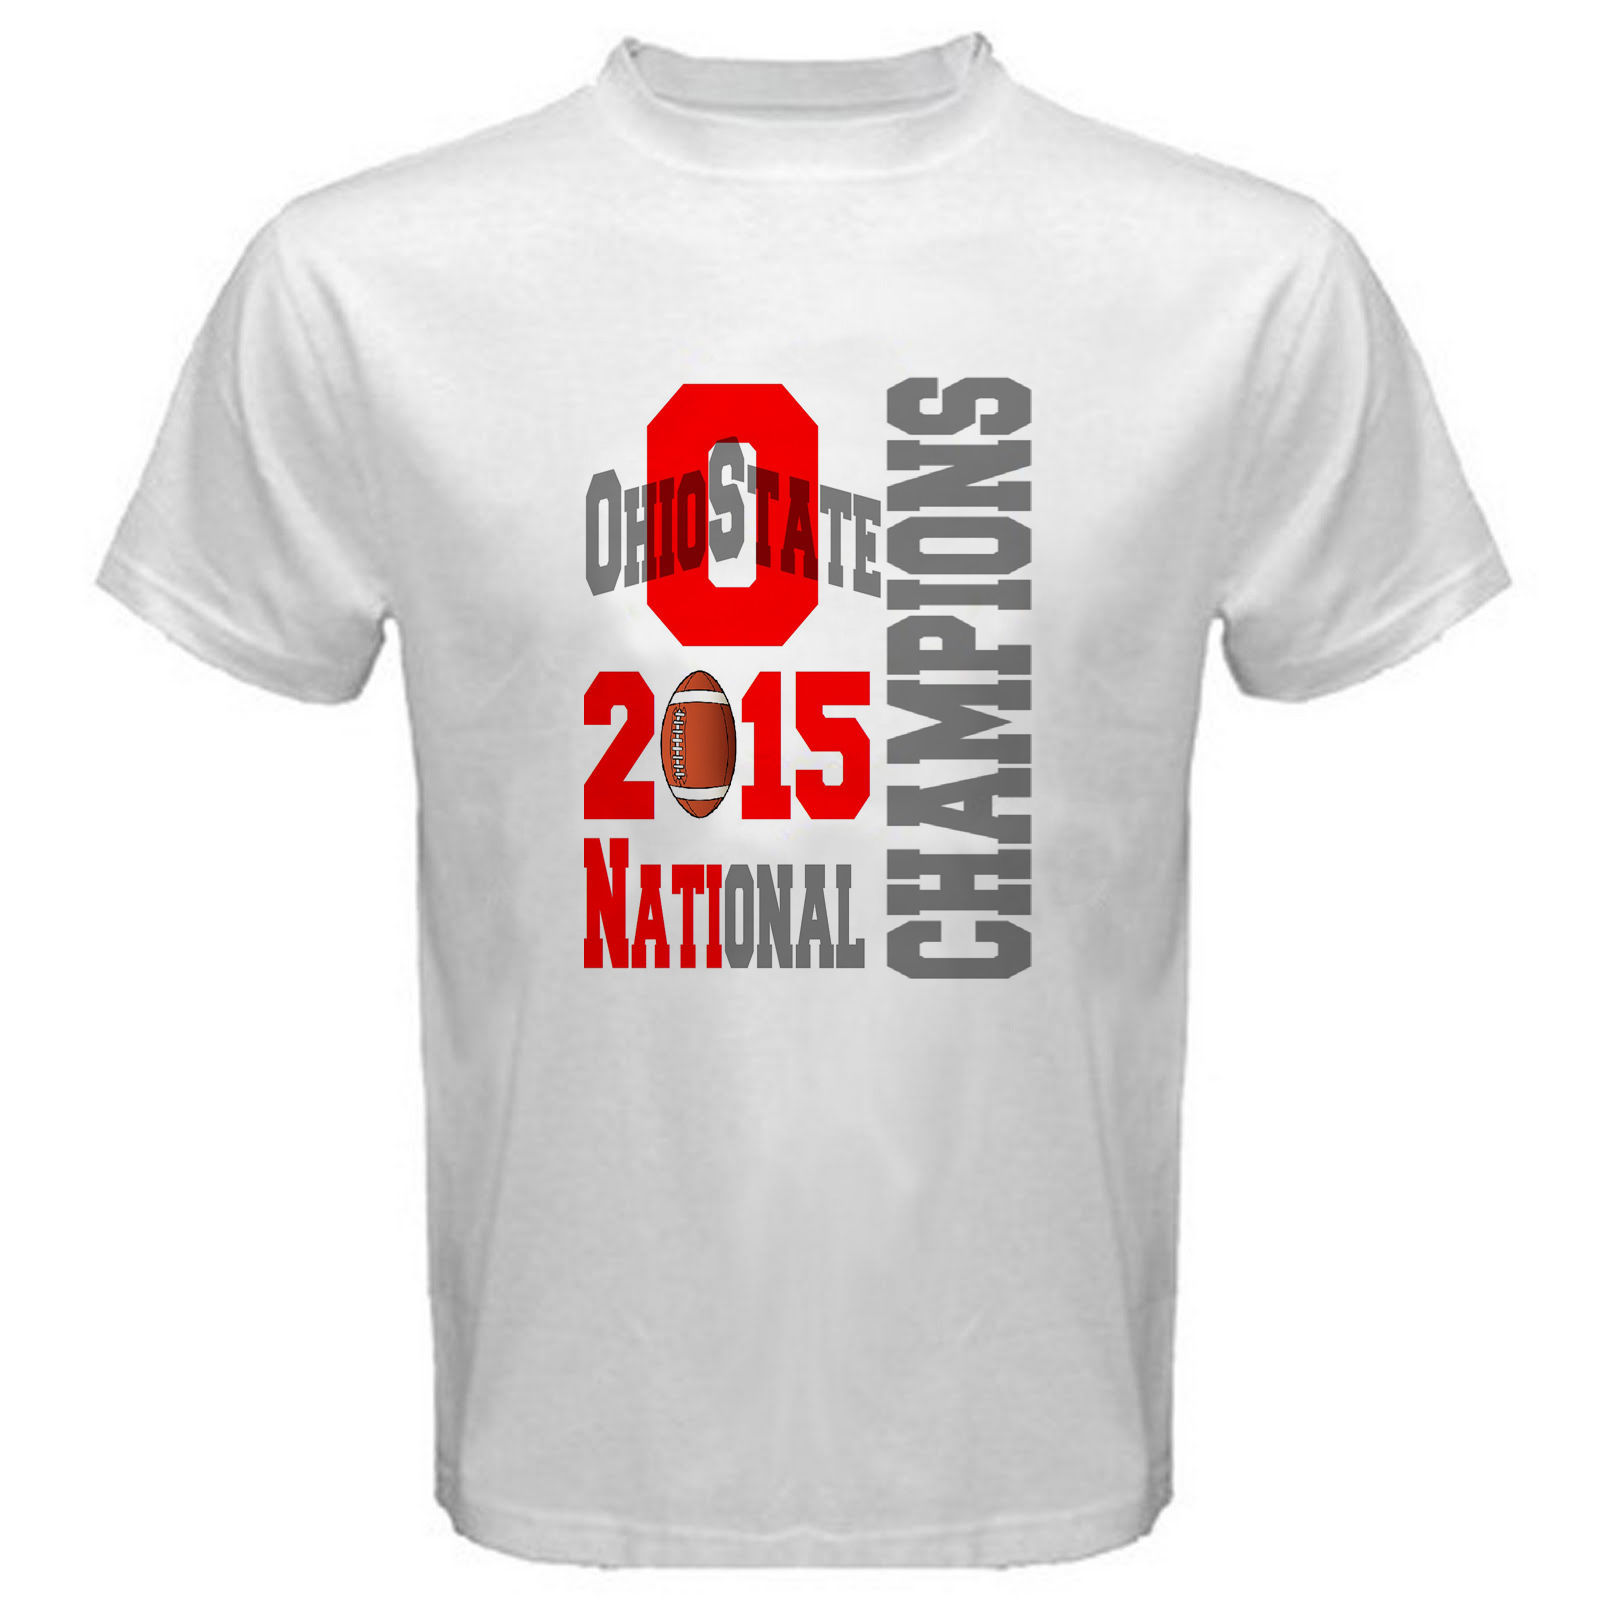 Ohio state national championship shirts amazon cardigan for Ohio state golf shirt